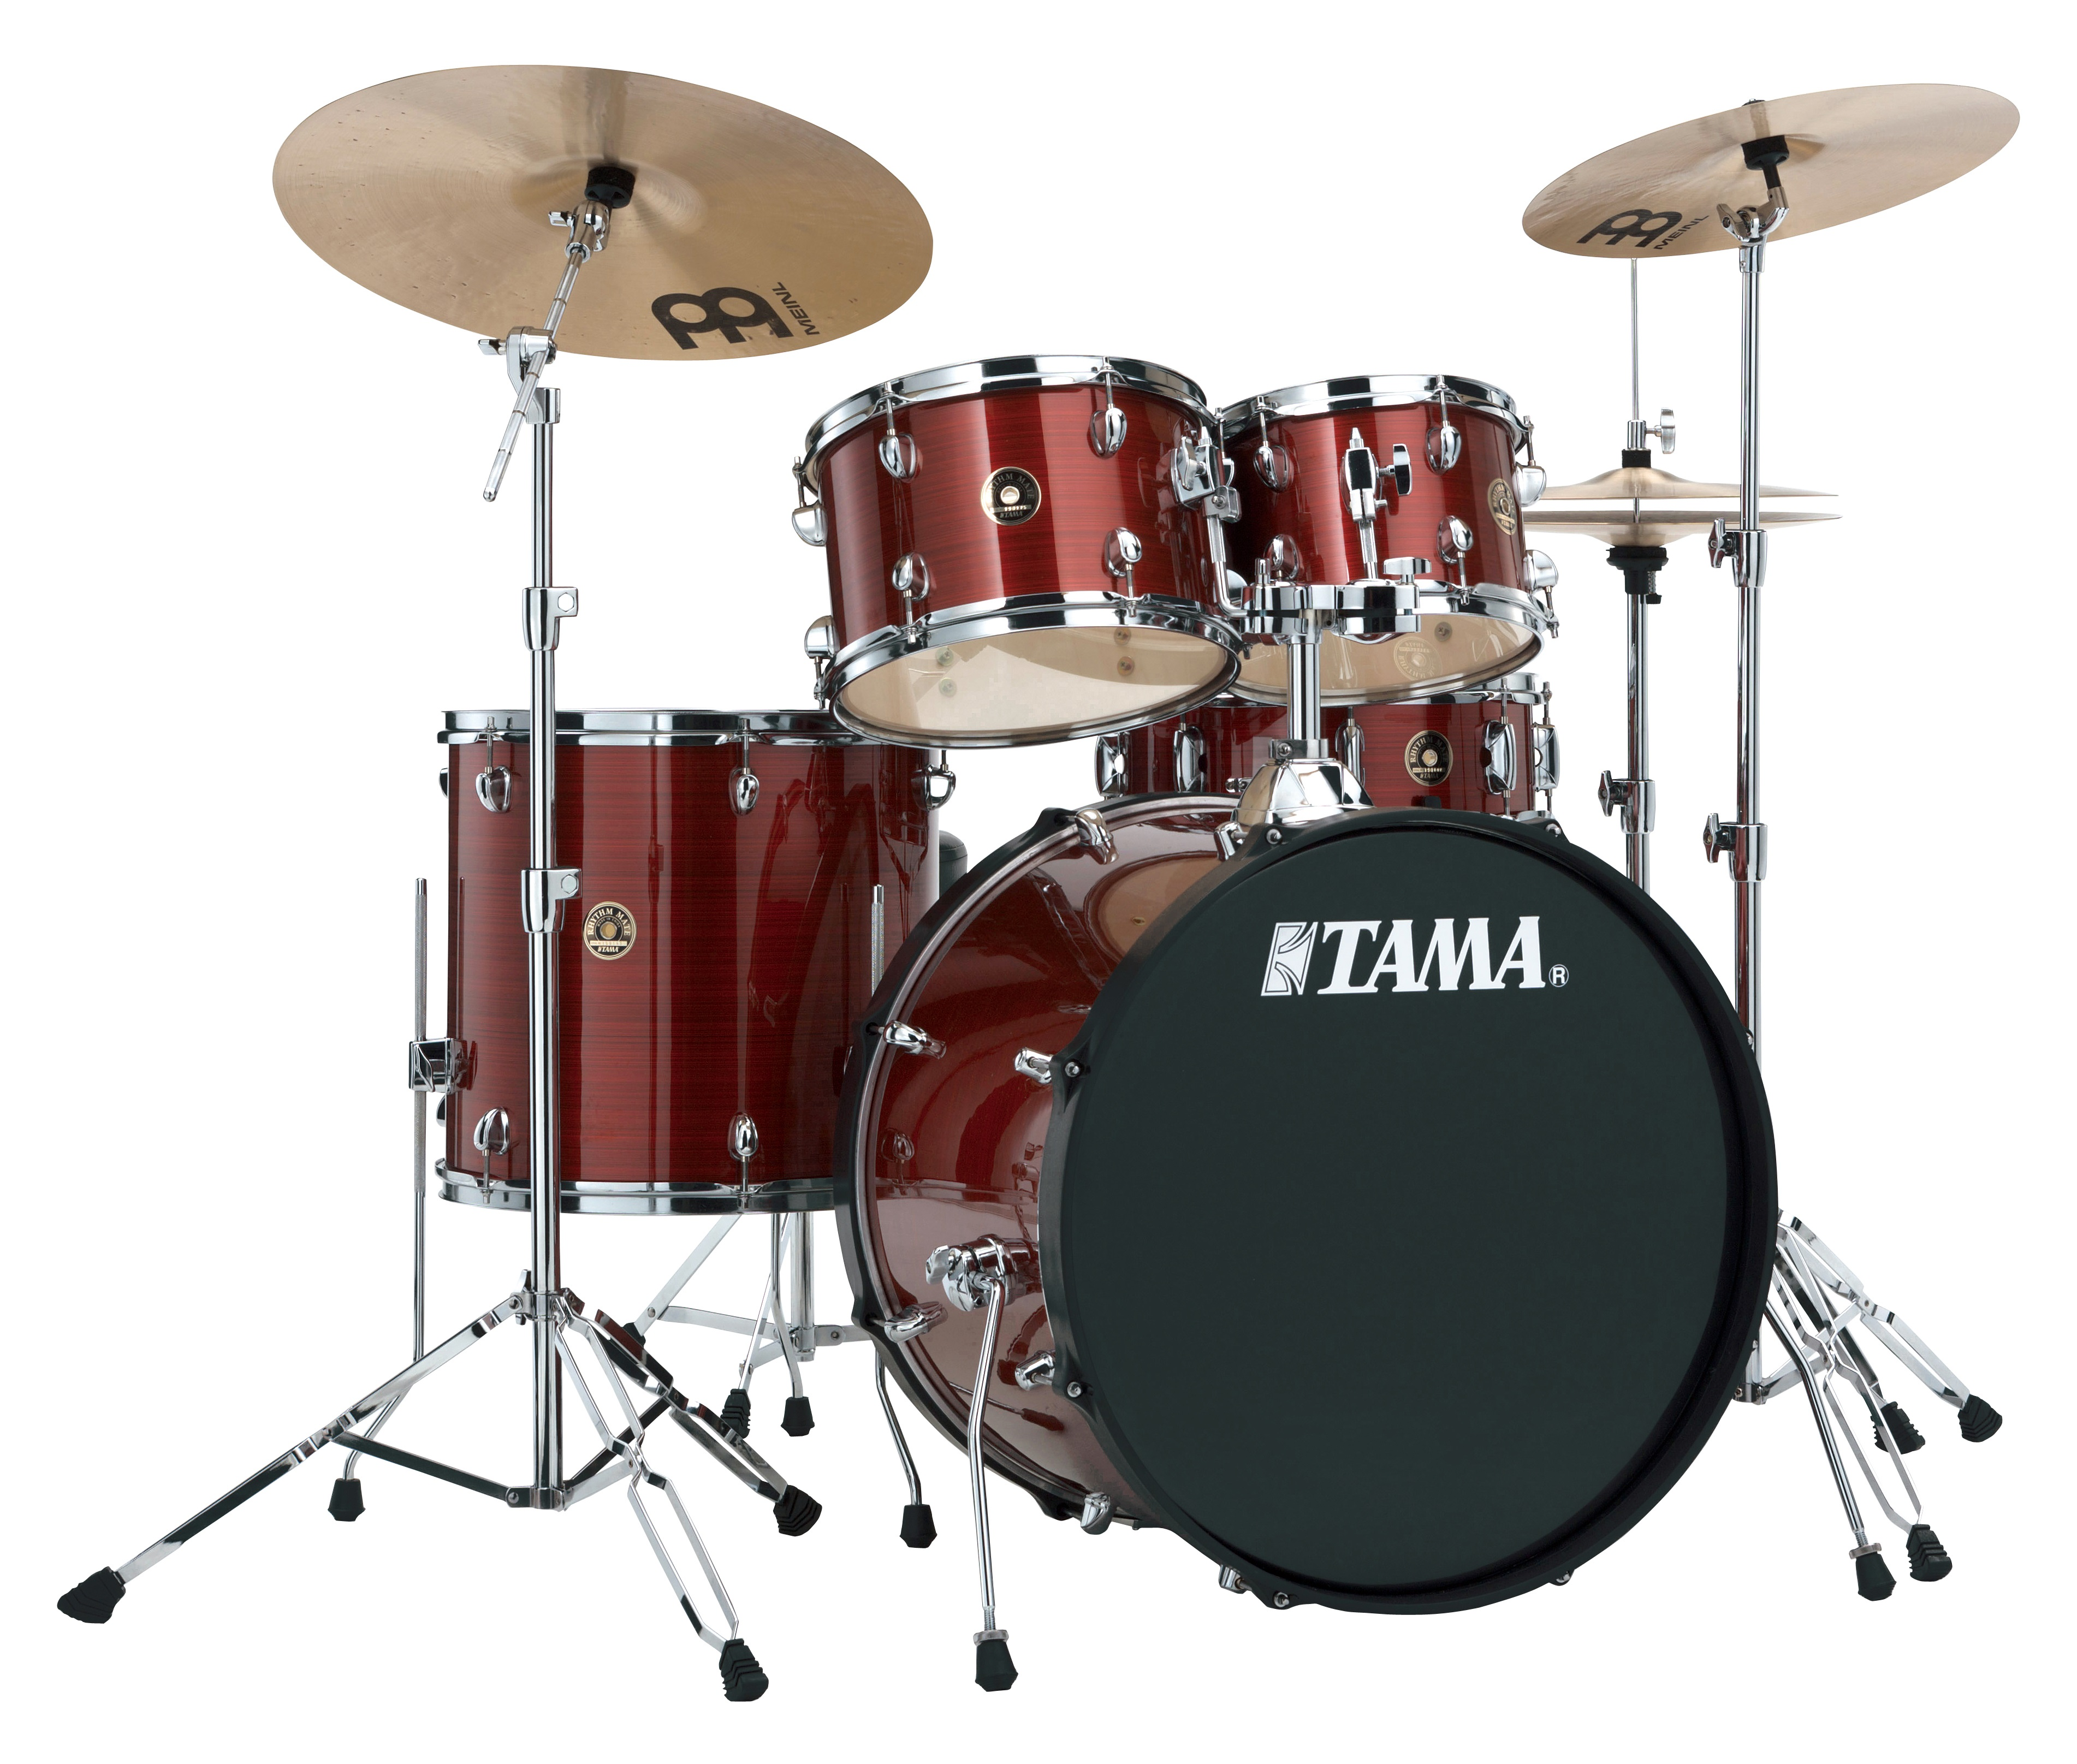 Tama Rhythm Mate Rock set Red Stream